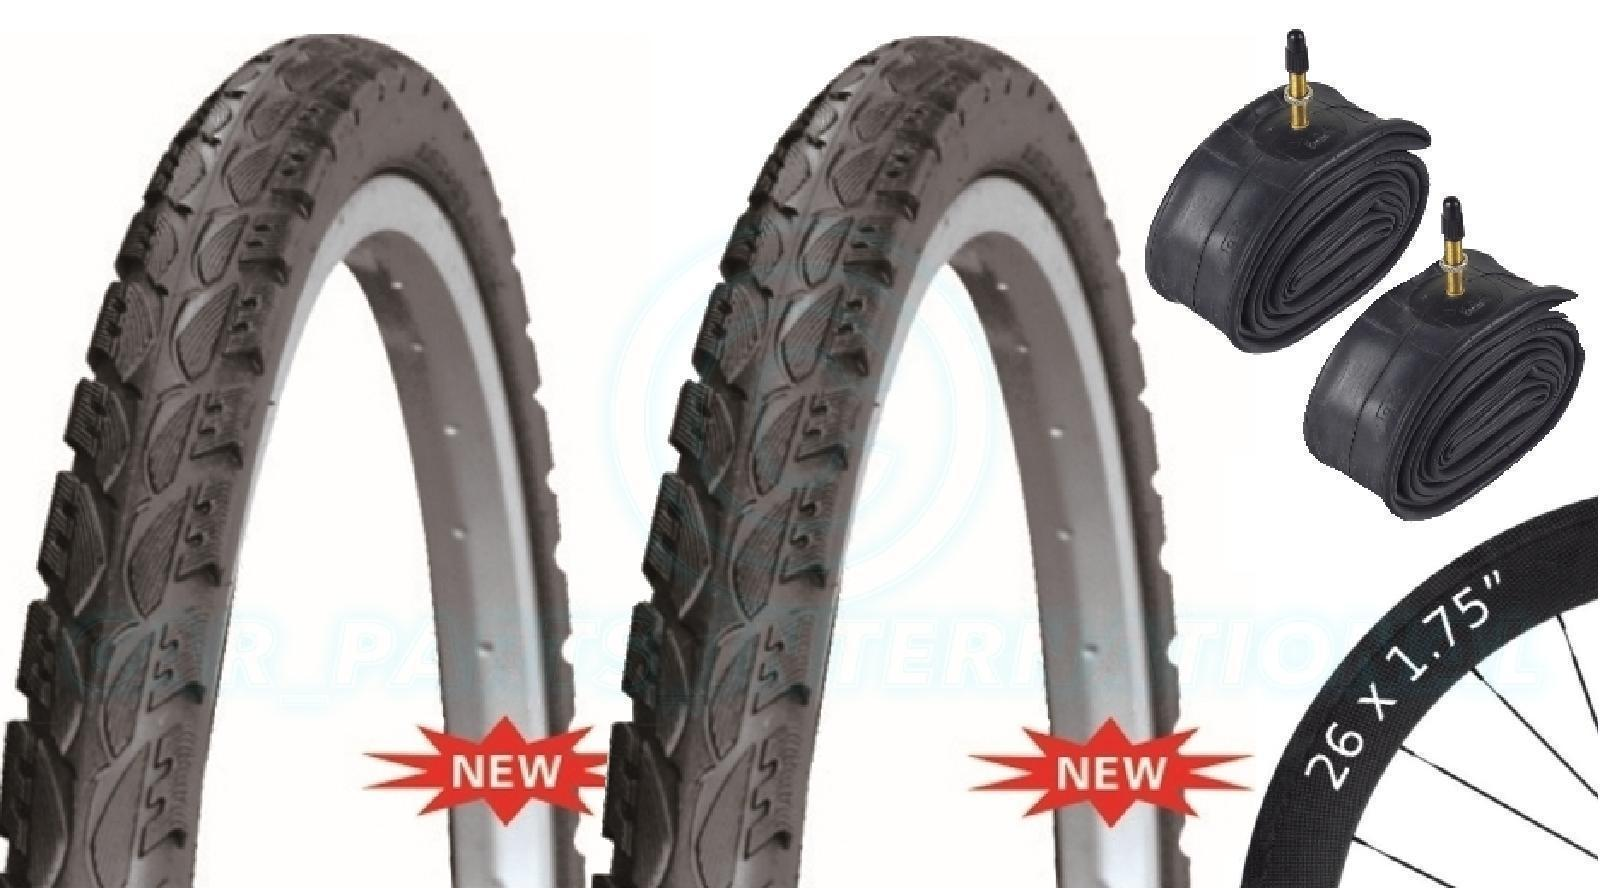 2 Bicycle Tyres Bike Tires - Road / Highway - 26 x 1.75 - With Presta Tubes